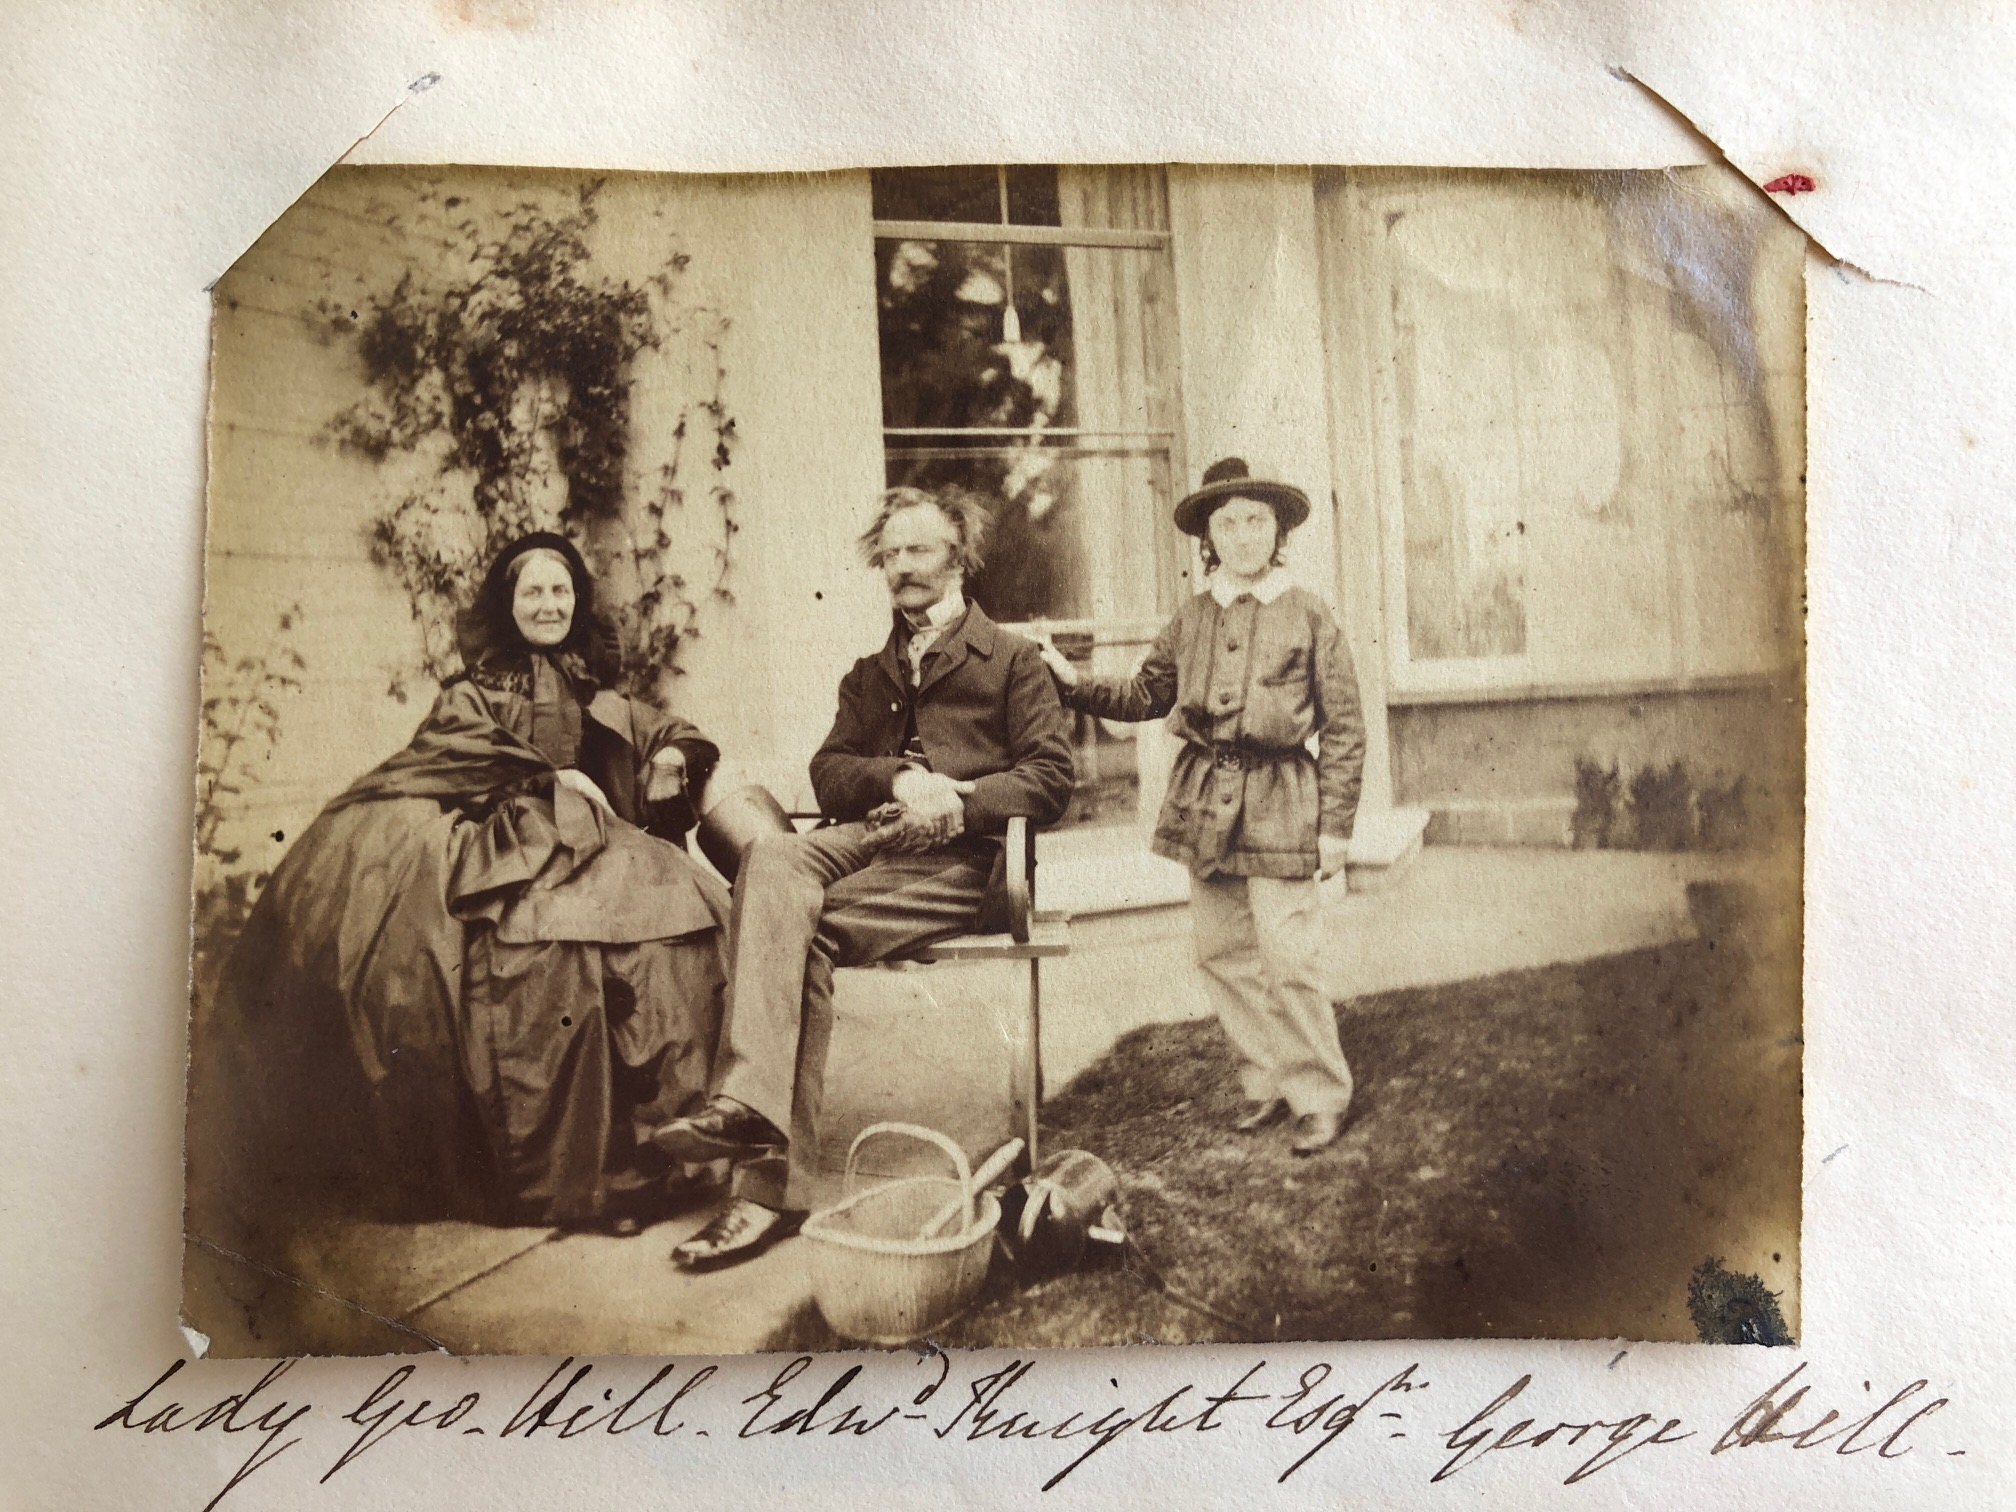 Lady George Hill (Louisa Knight), Edward Knight & Master George Hill at Chawton House rectory.  Credit: Karen Ievers